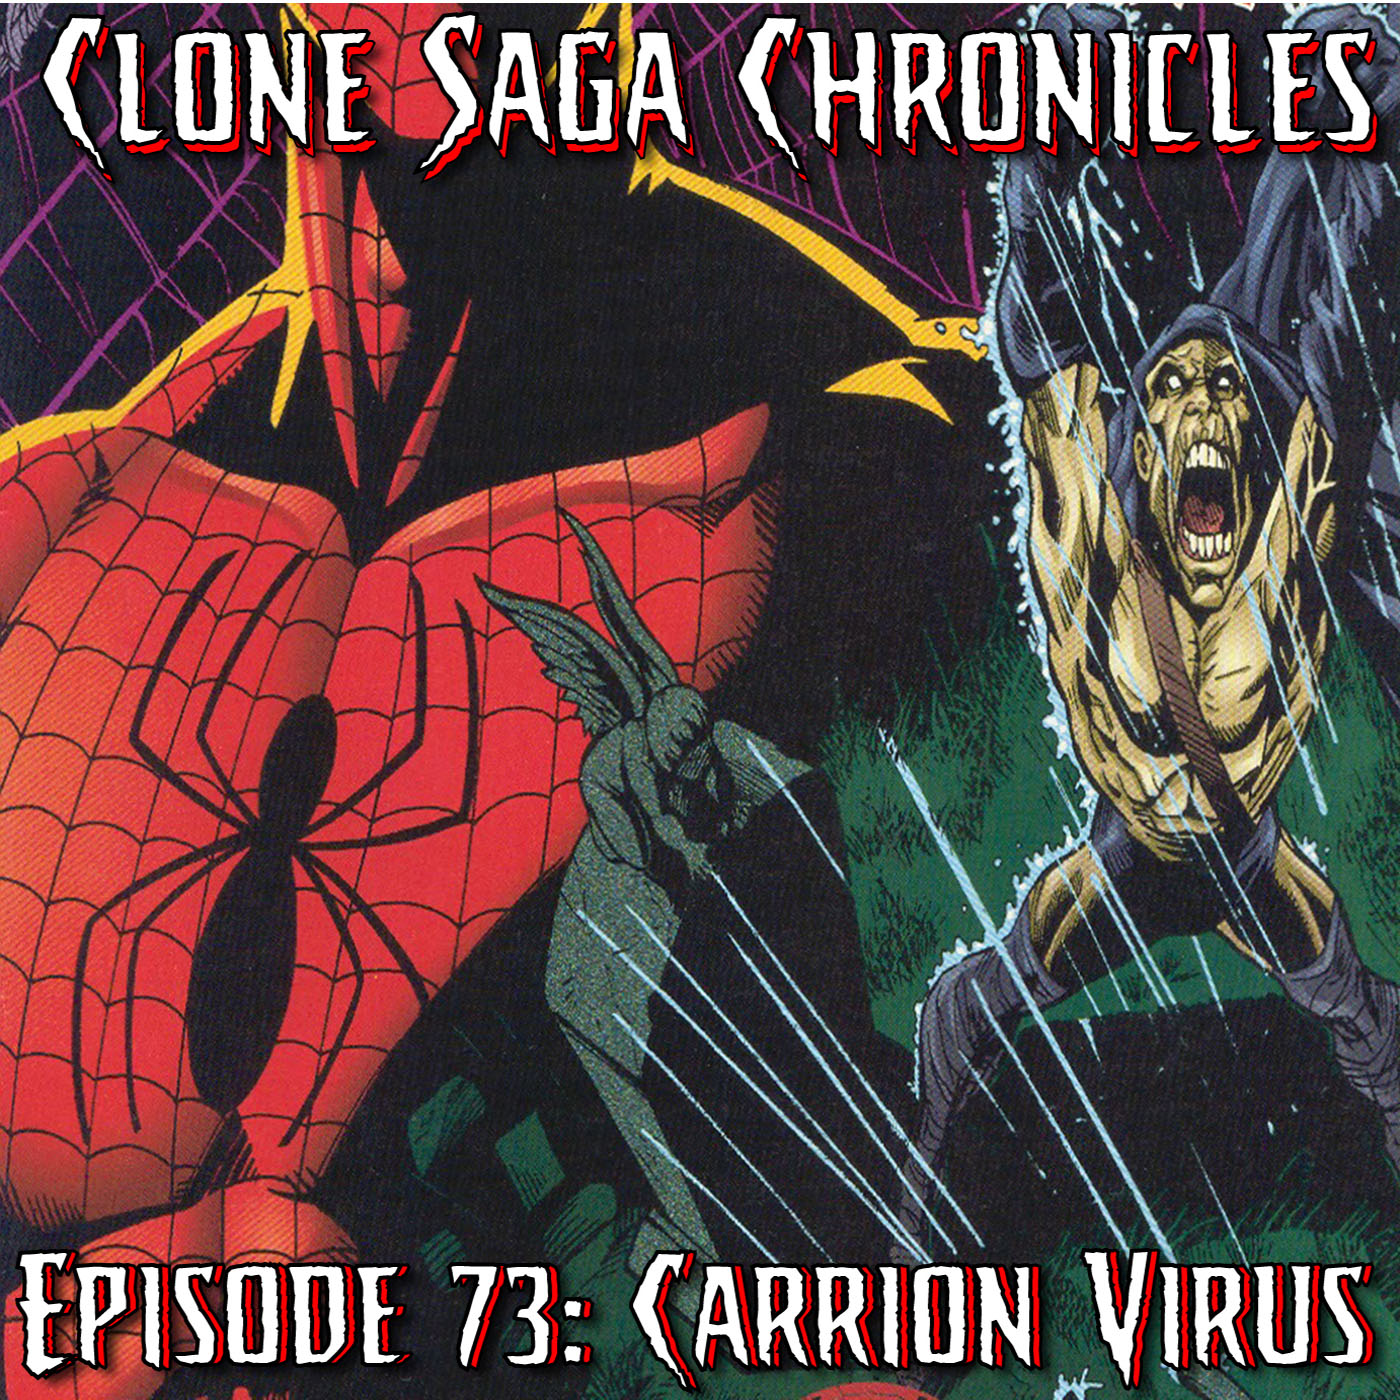 CSC Episode 73: Carrion & the Carrion Virus